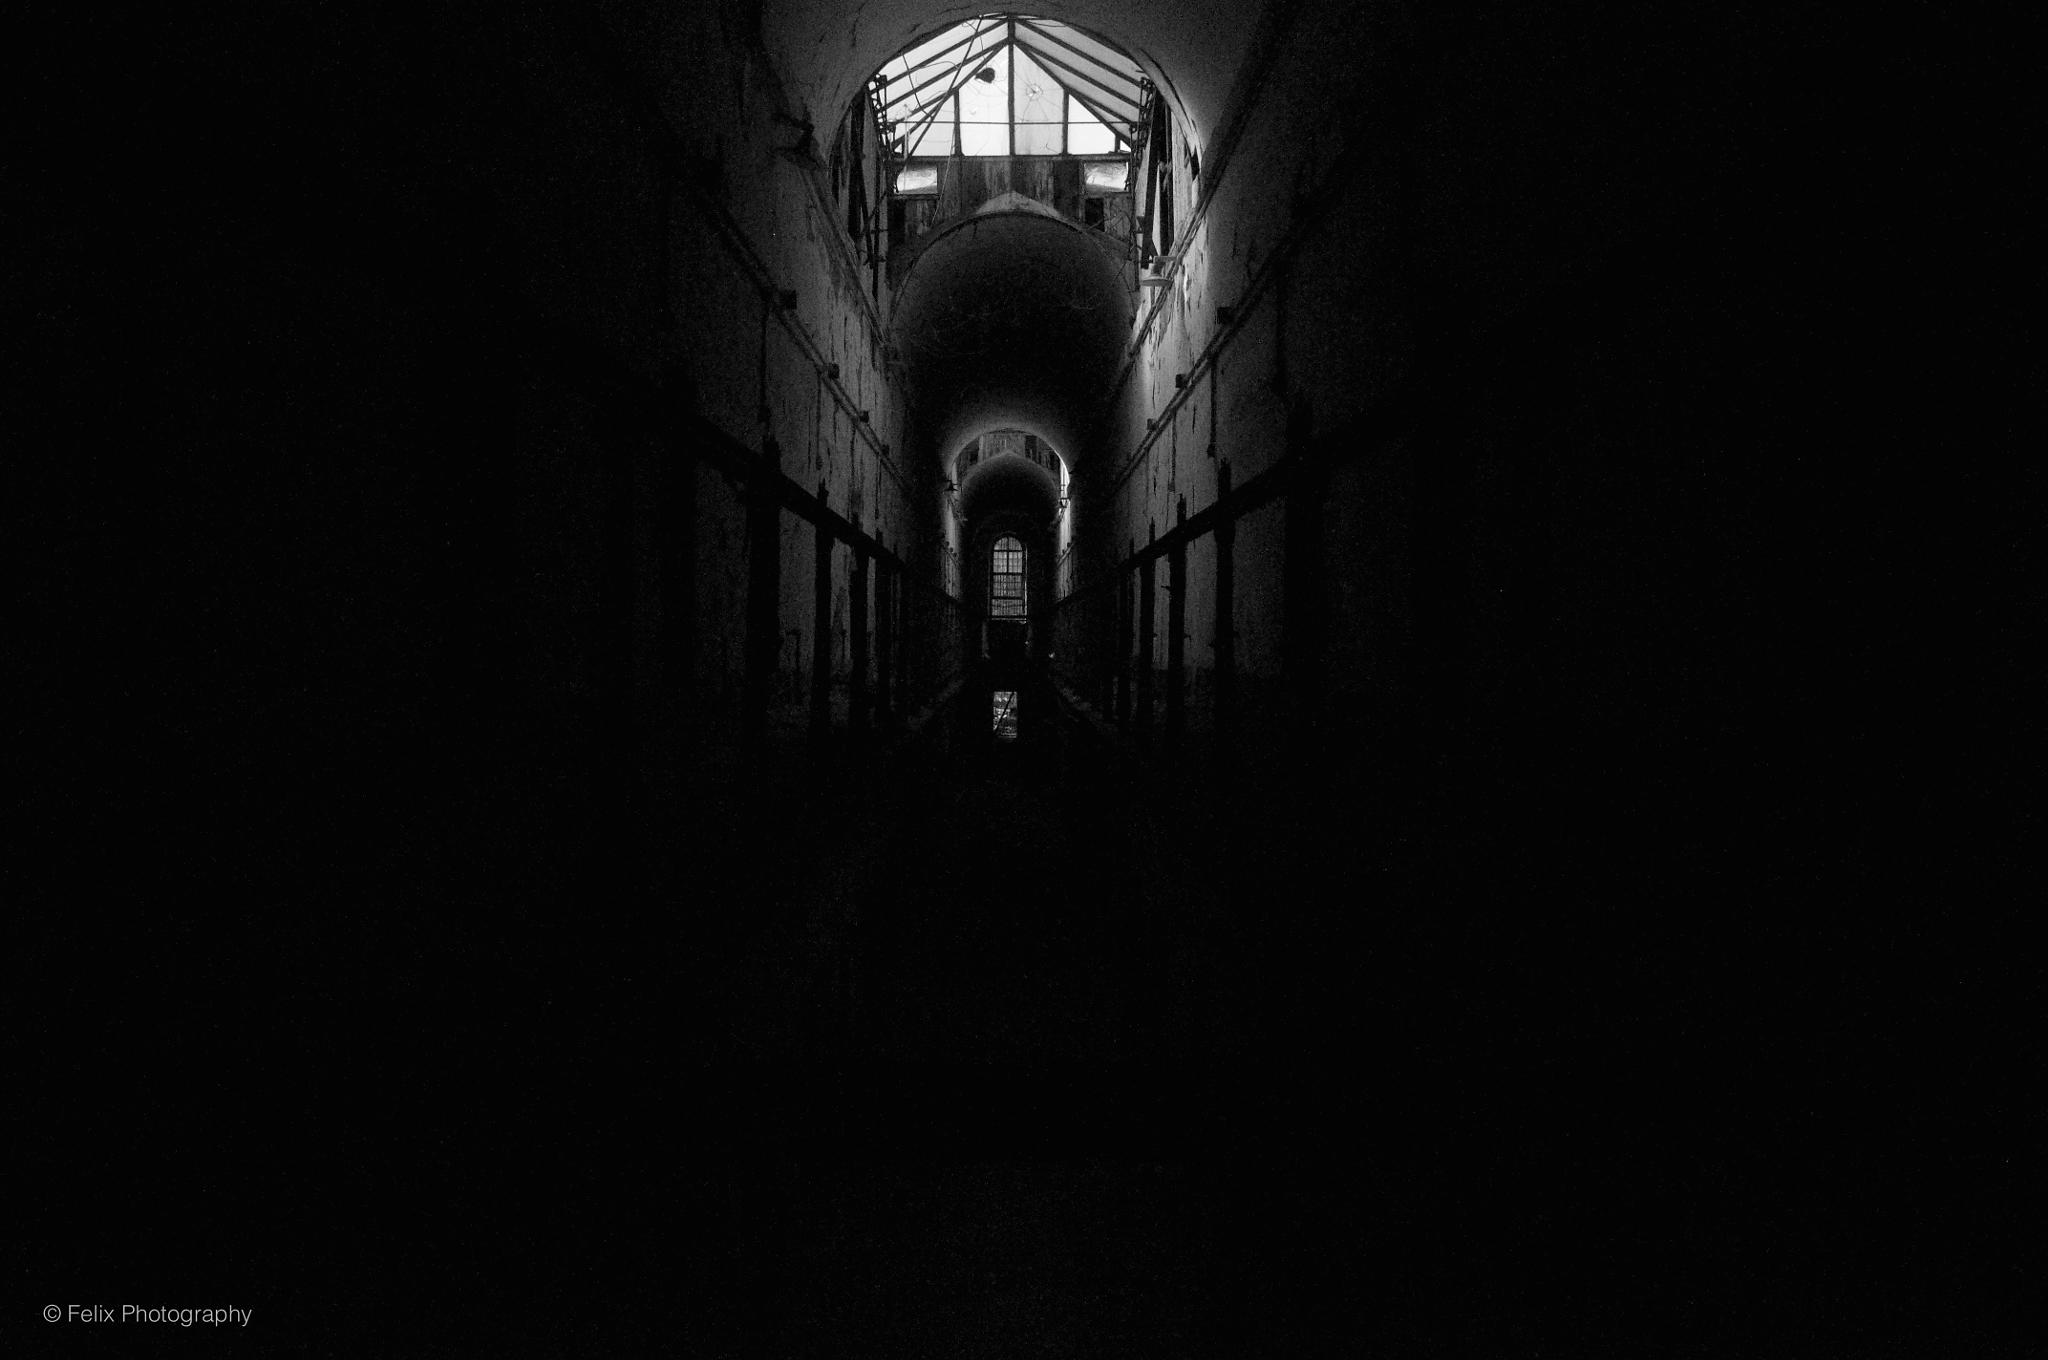 Eastern State Penitentiary by felixphotography